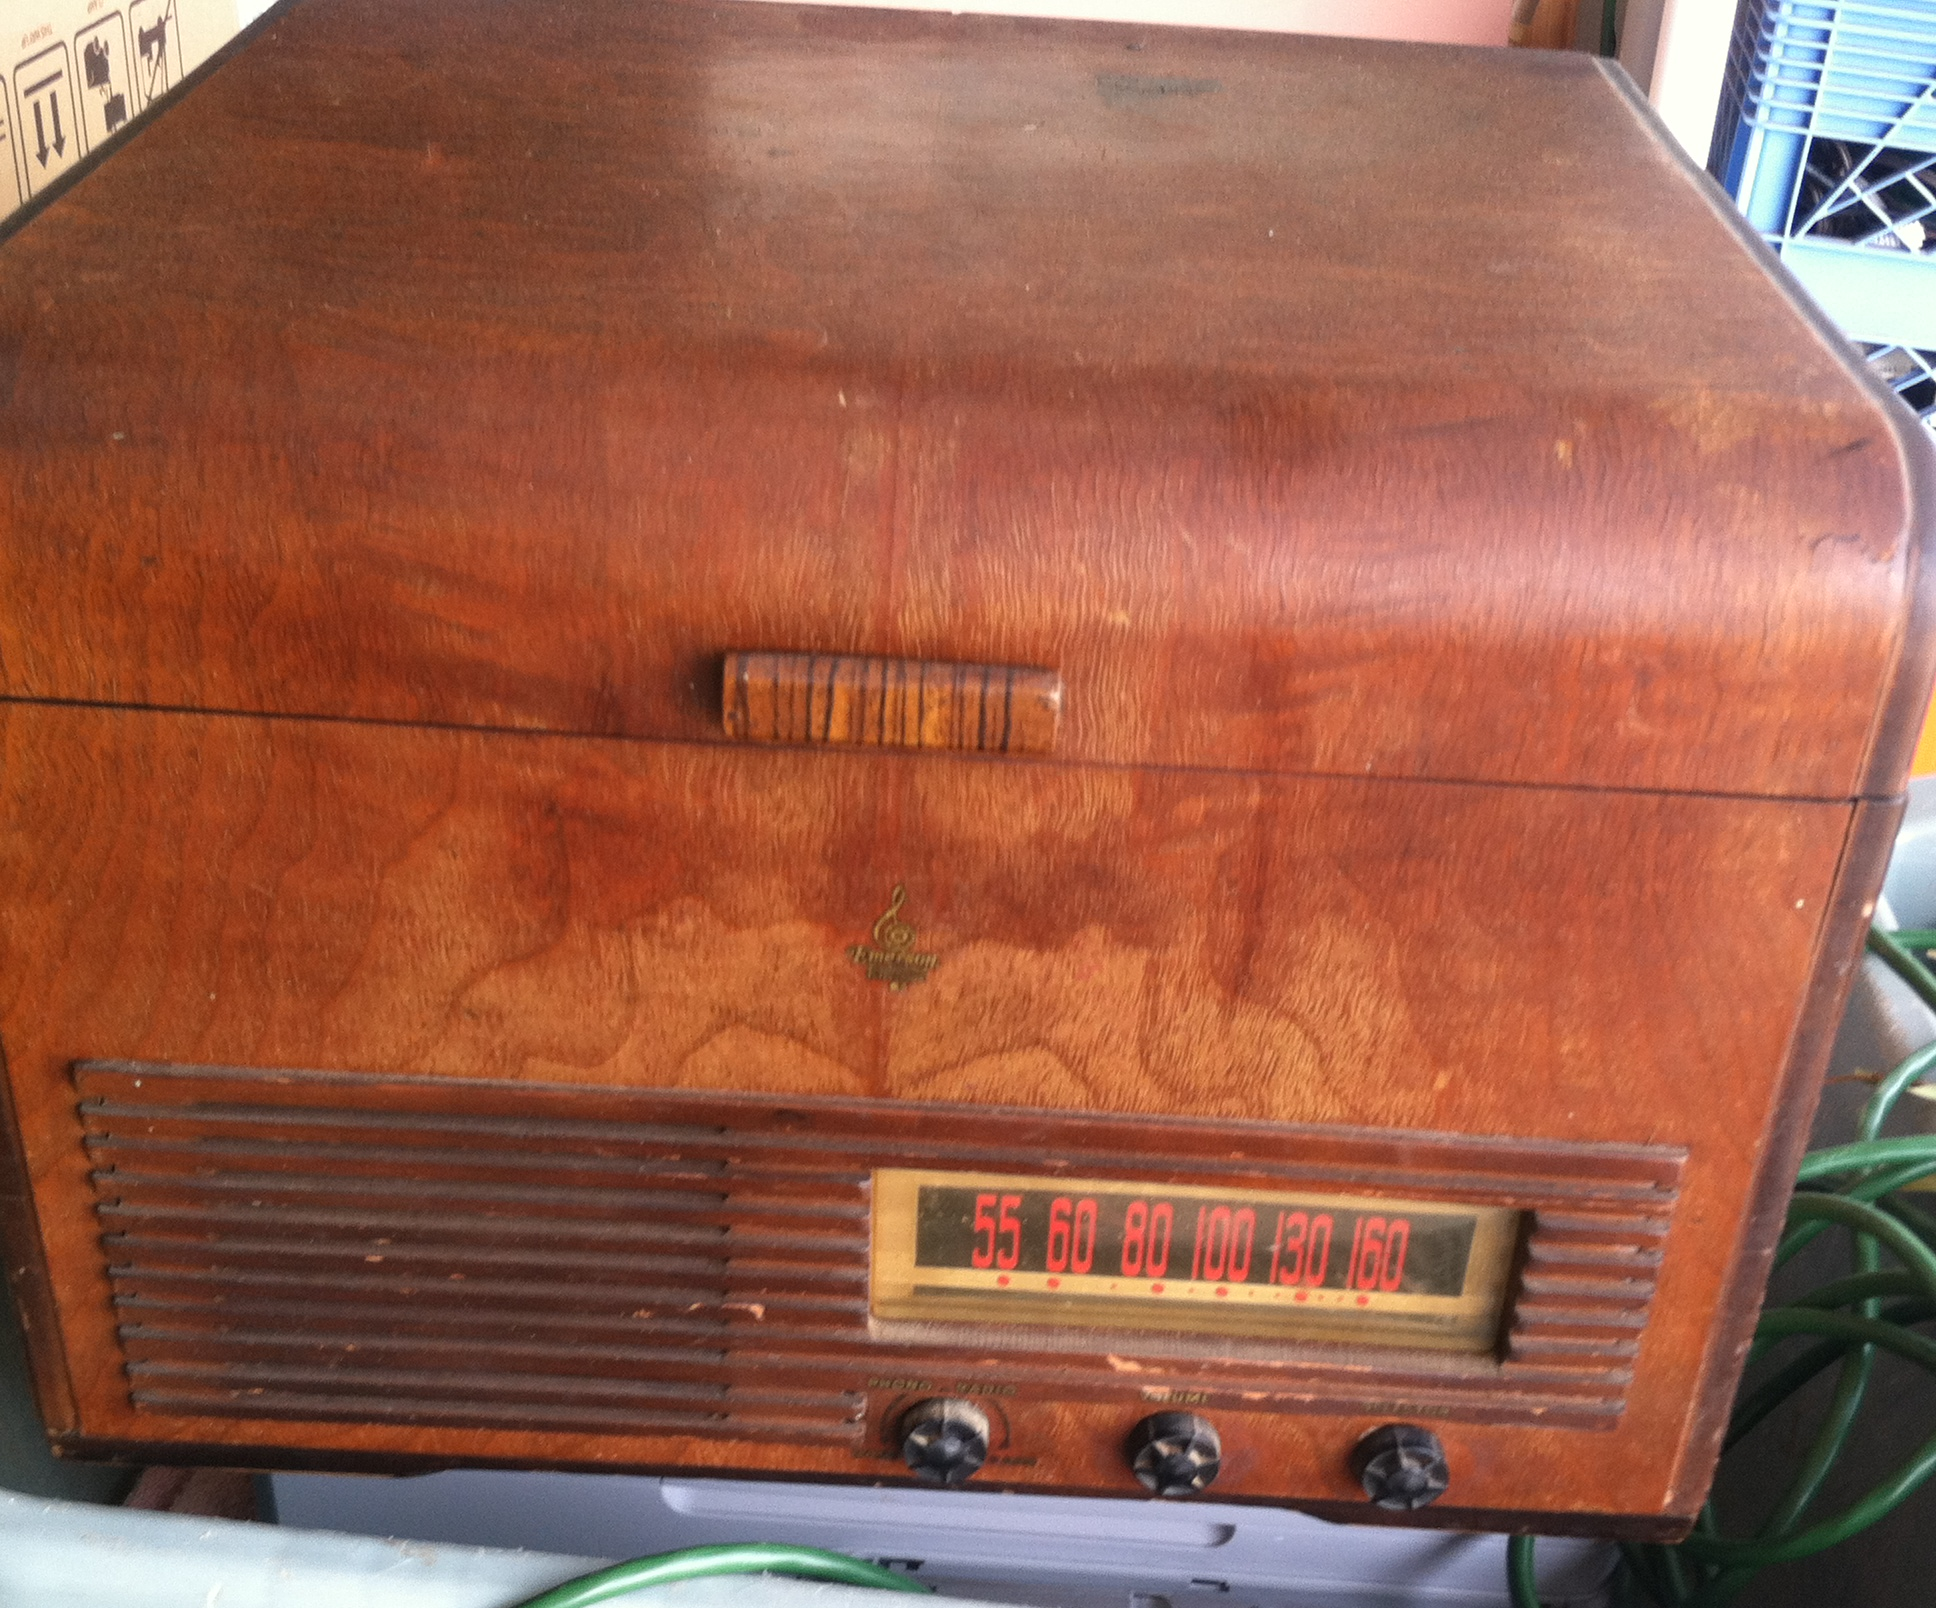 EMERSON RADIO RECORD PLAYER.JPG